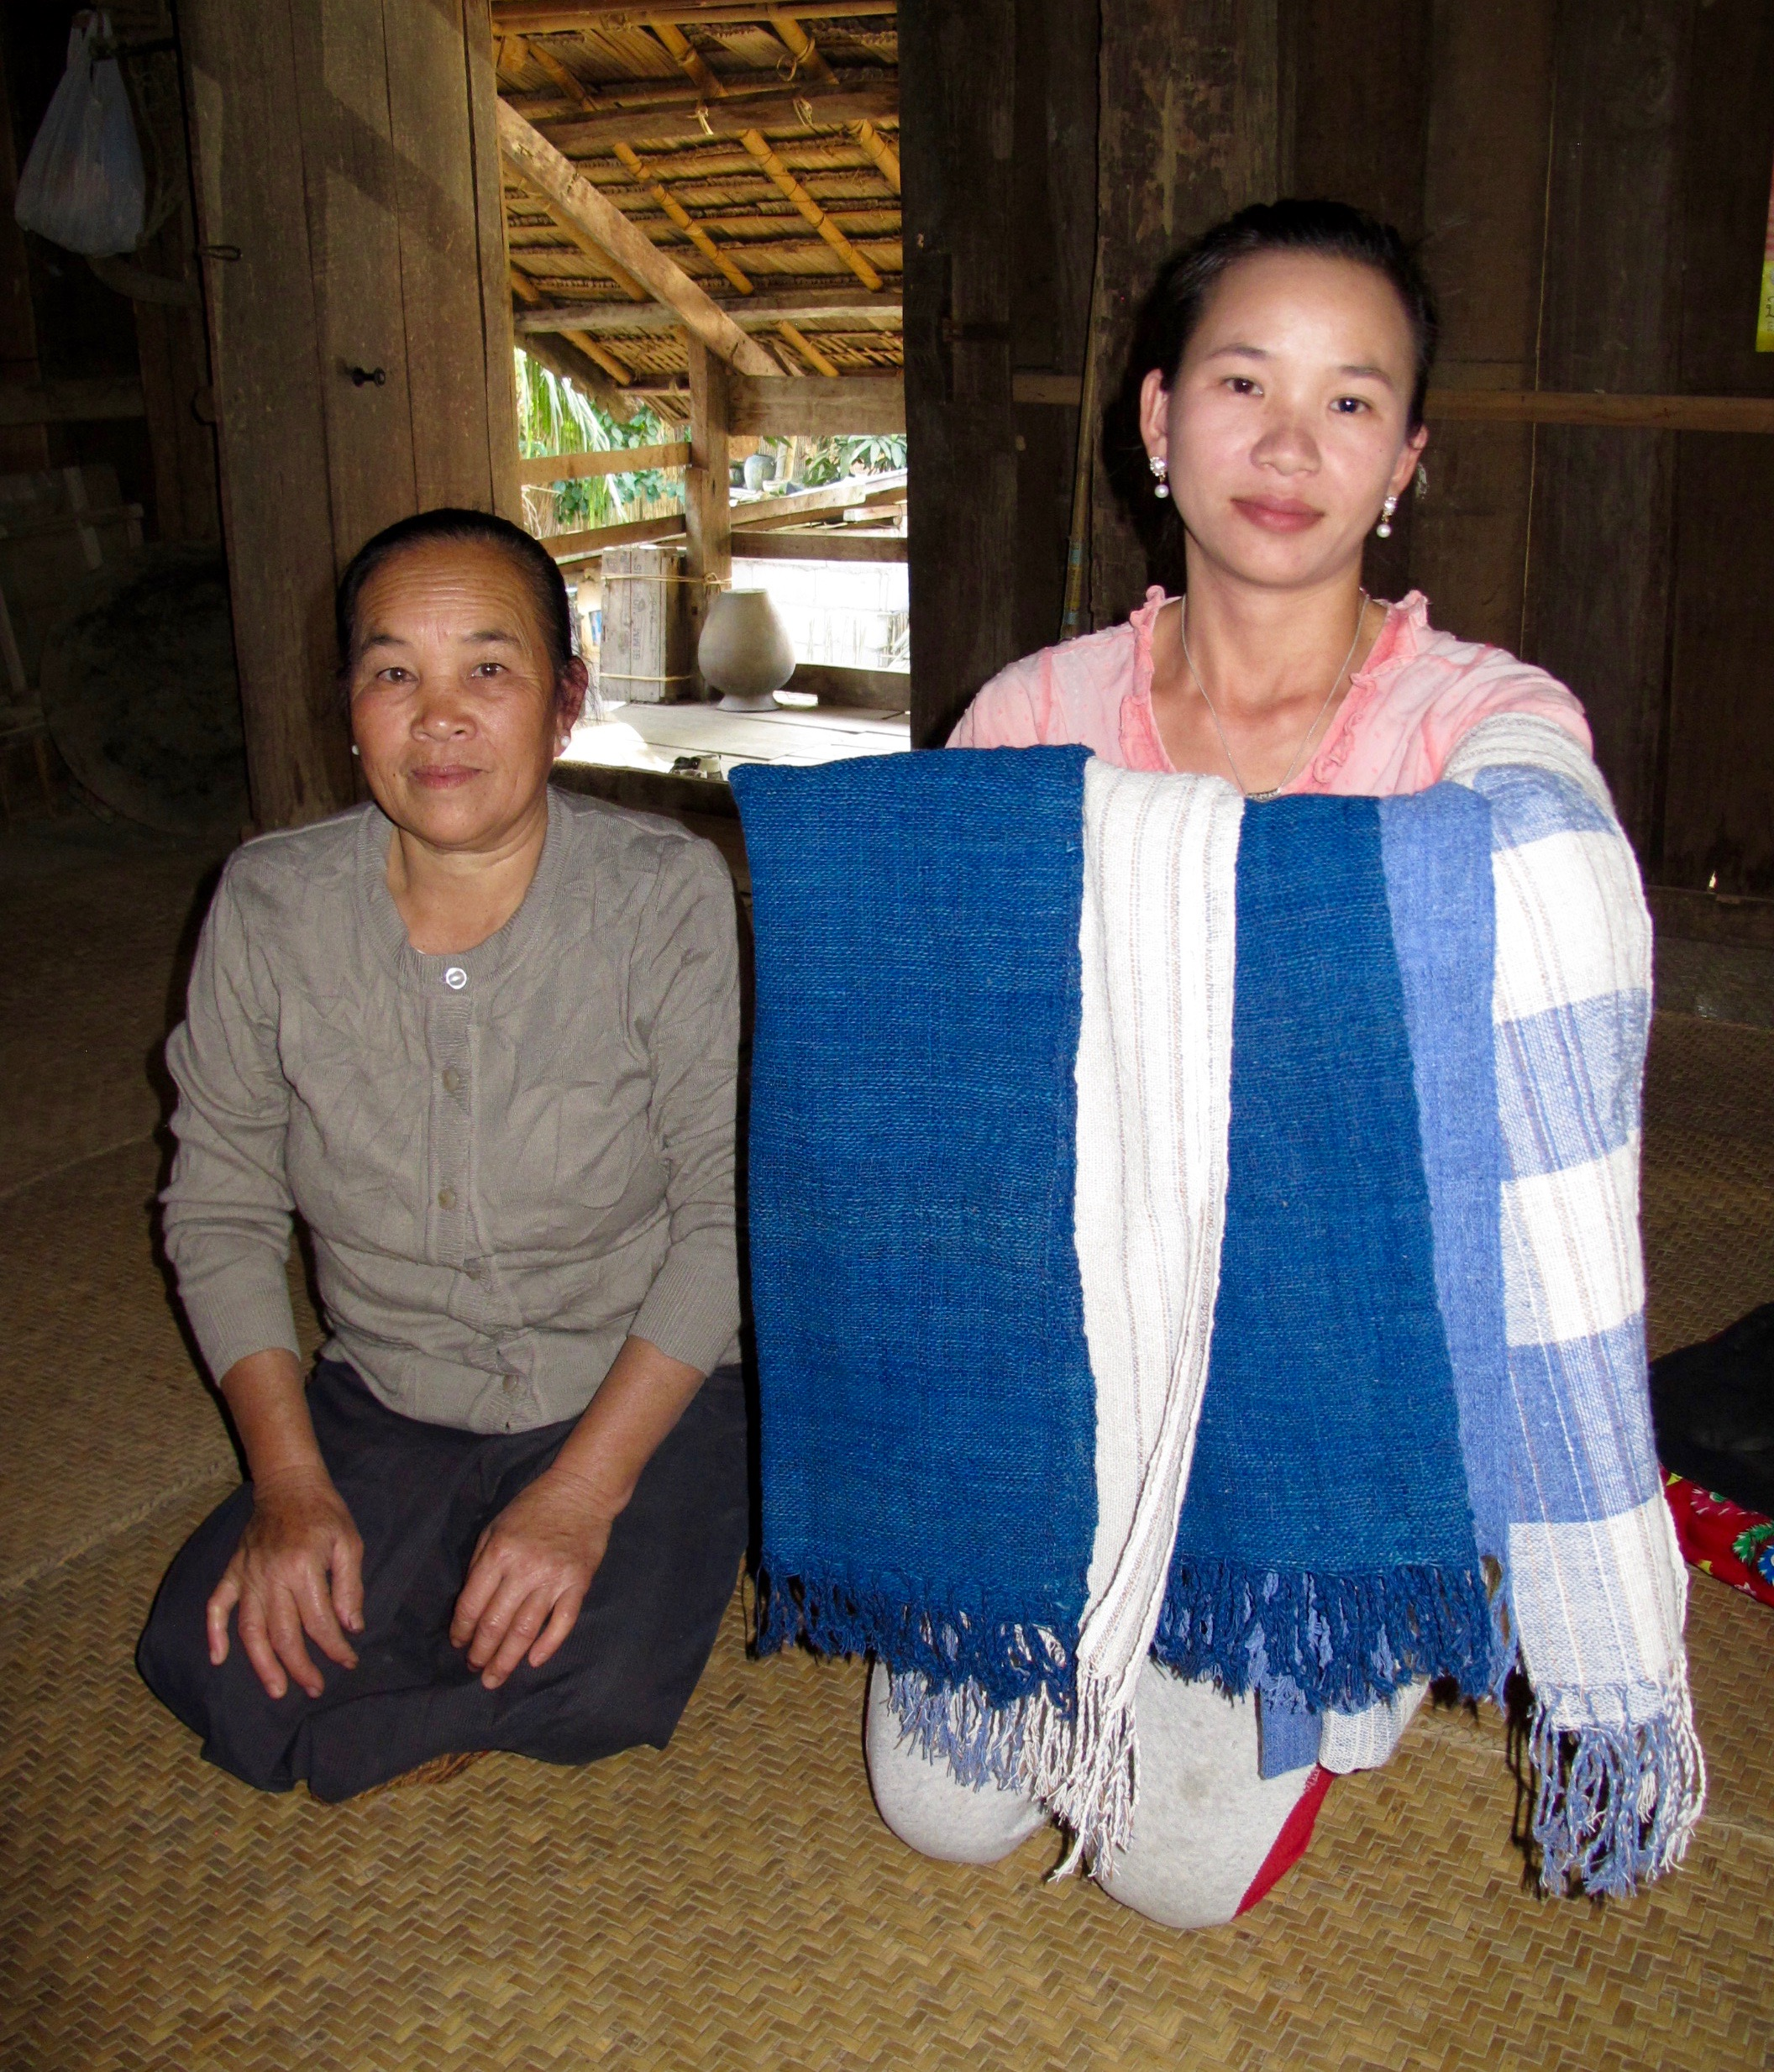 Chaban and her daughter Noy with their rich indigo scarves